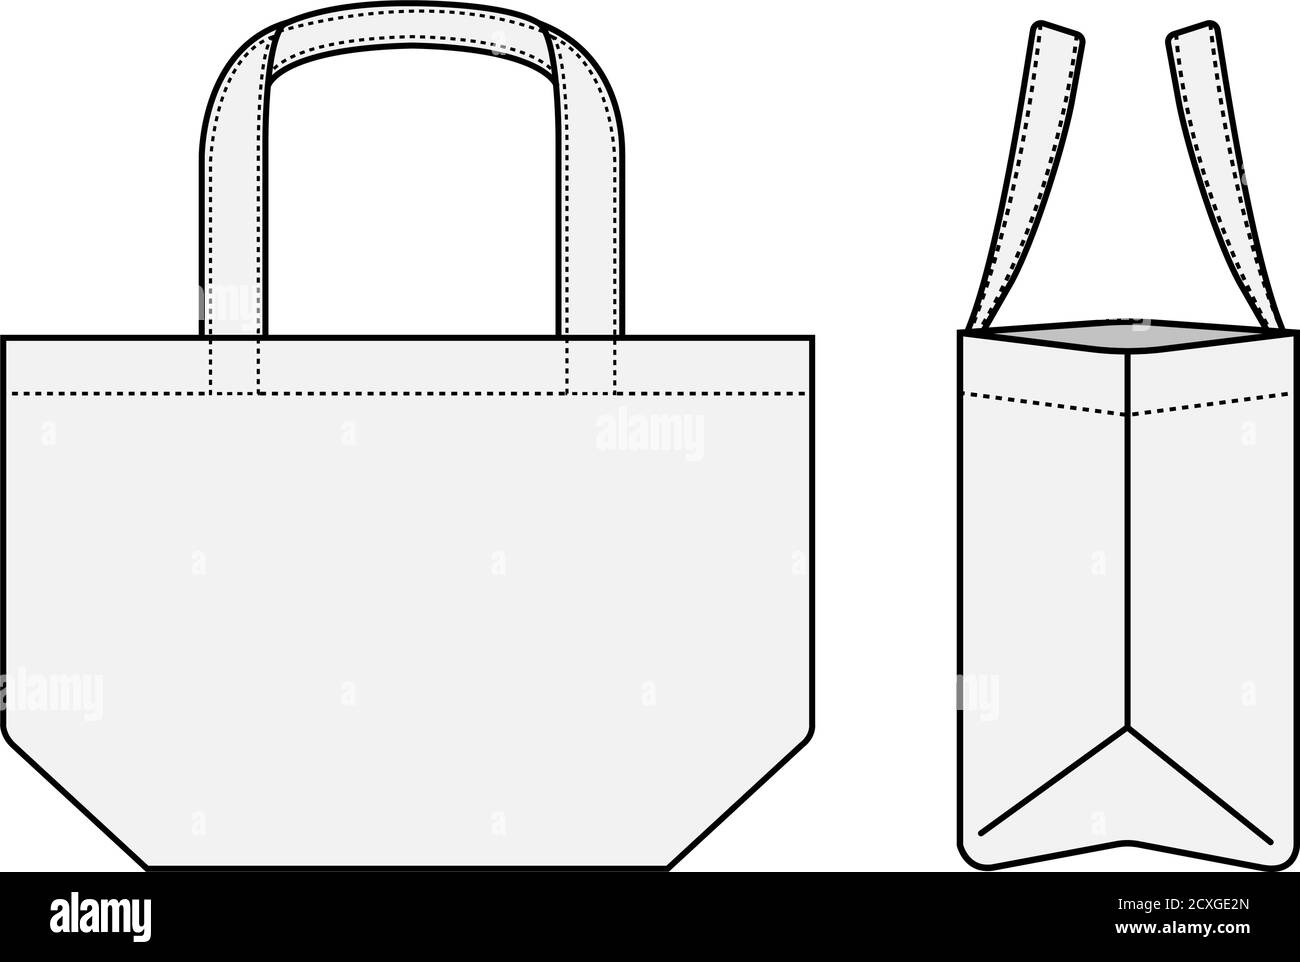 This is the best new assortment of latest latest bag mockups for free of charge transfer. Small Tote Bag Ecobag Shopping Bag Template Vector Illustration With Side View White Stock Vector Image Art Alamy